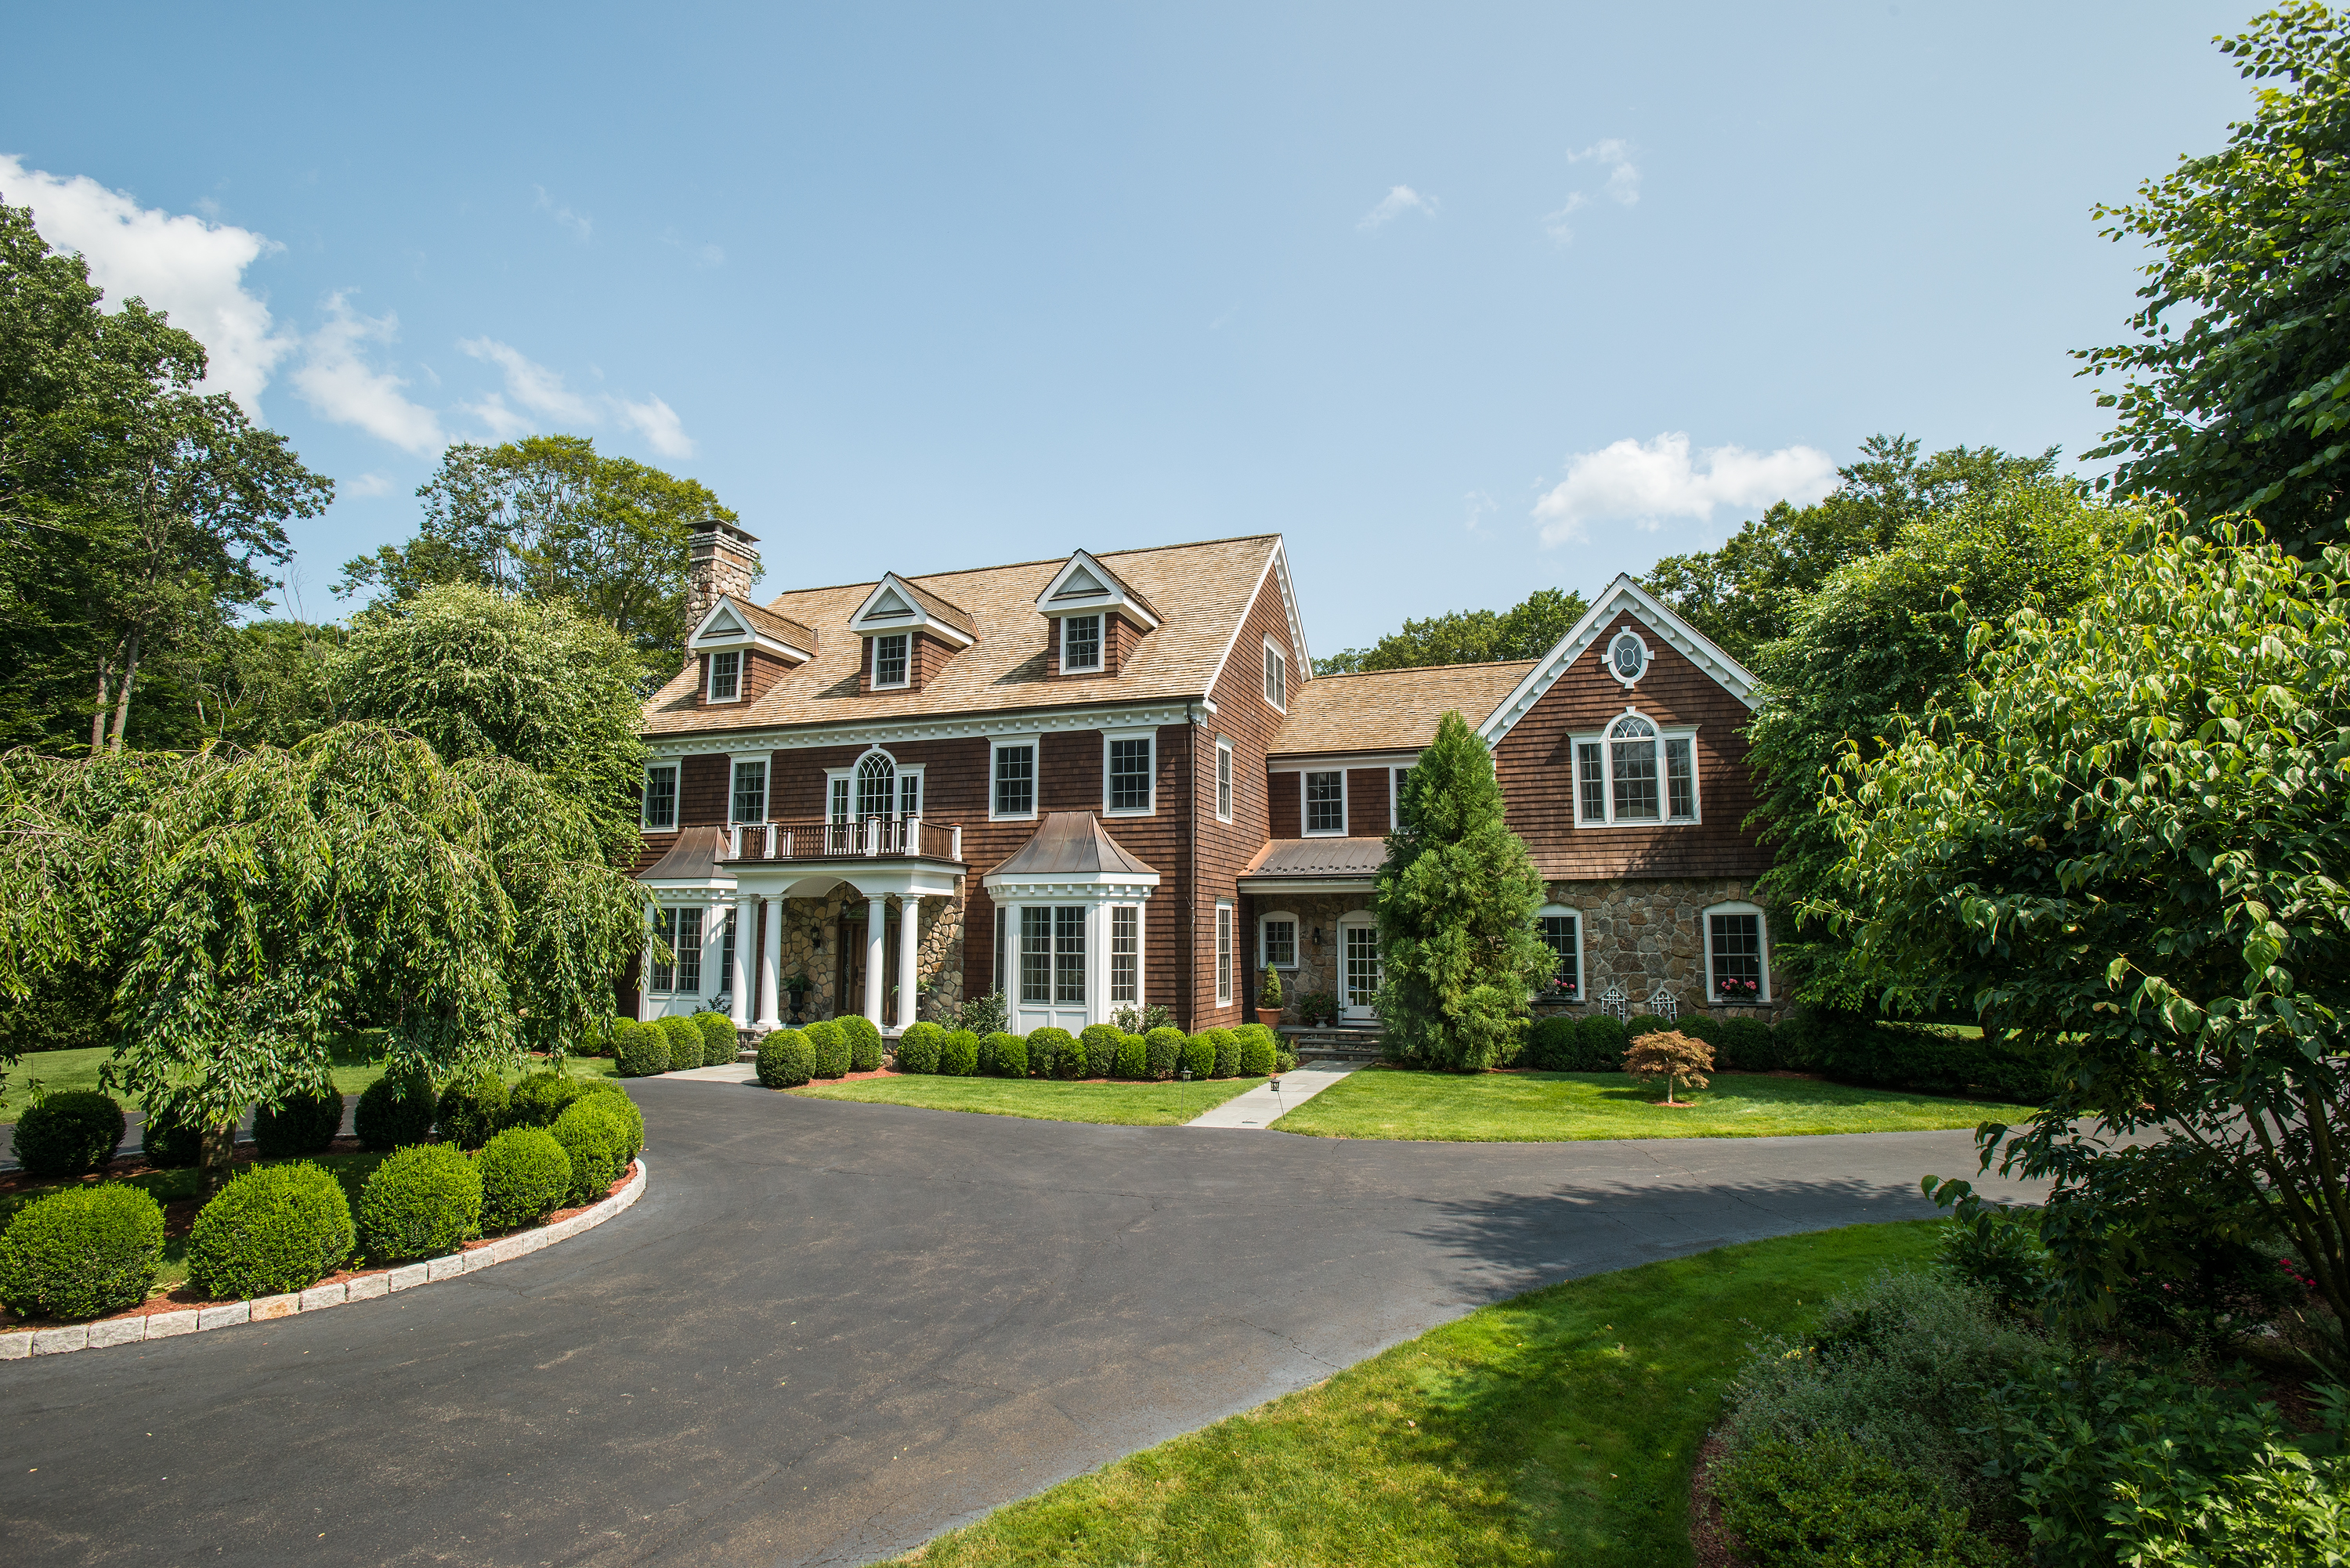 Property For Sale at Master Craftsmanship with Impressive Architecture